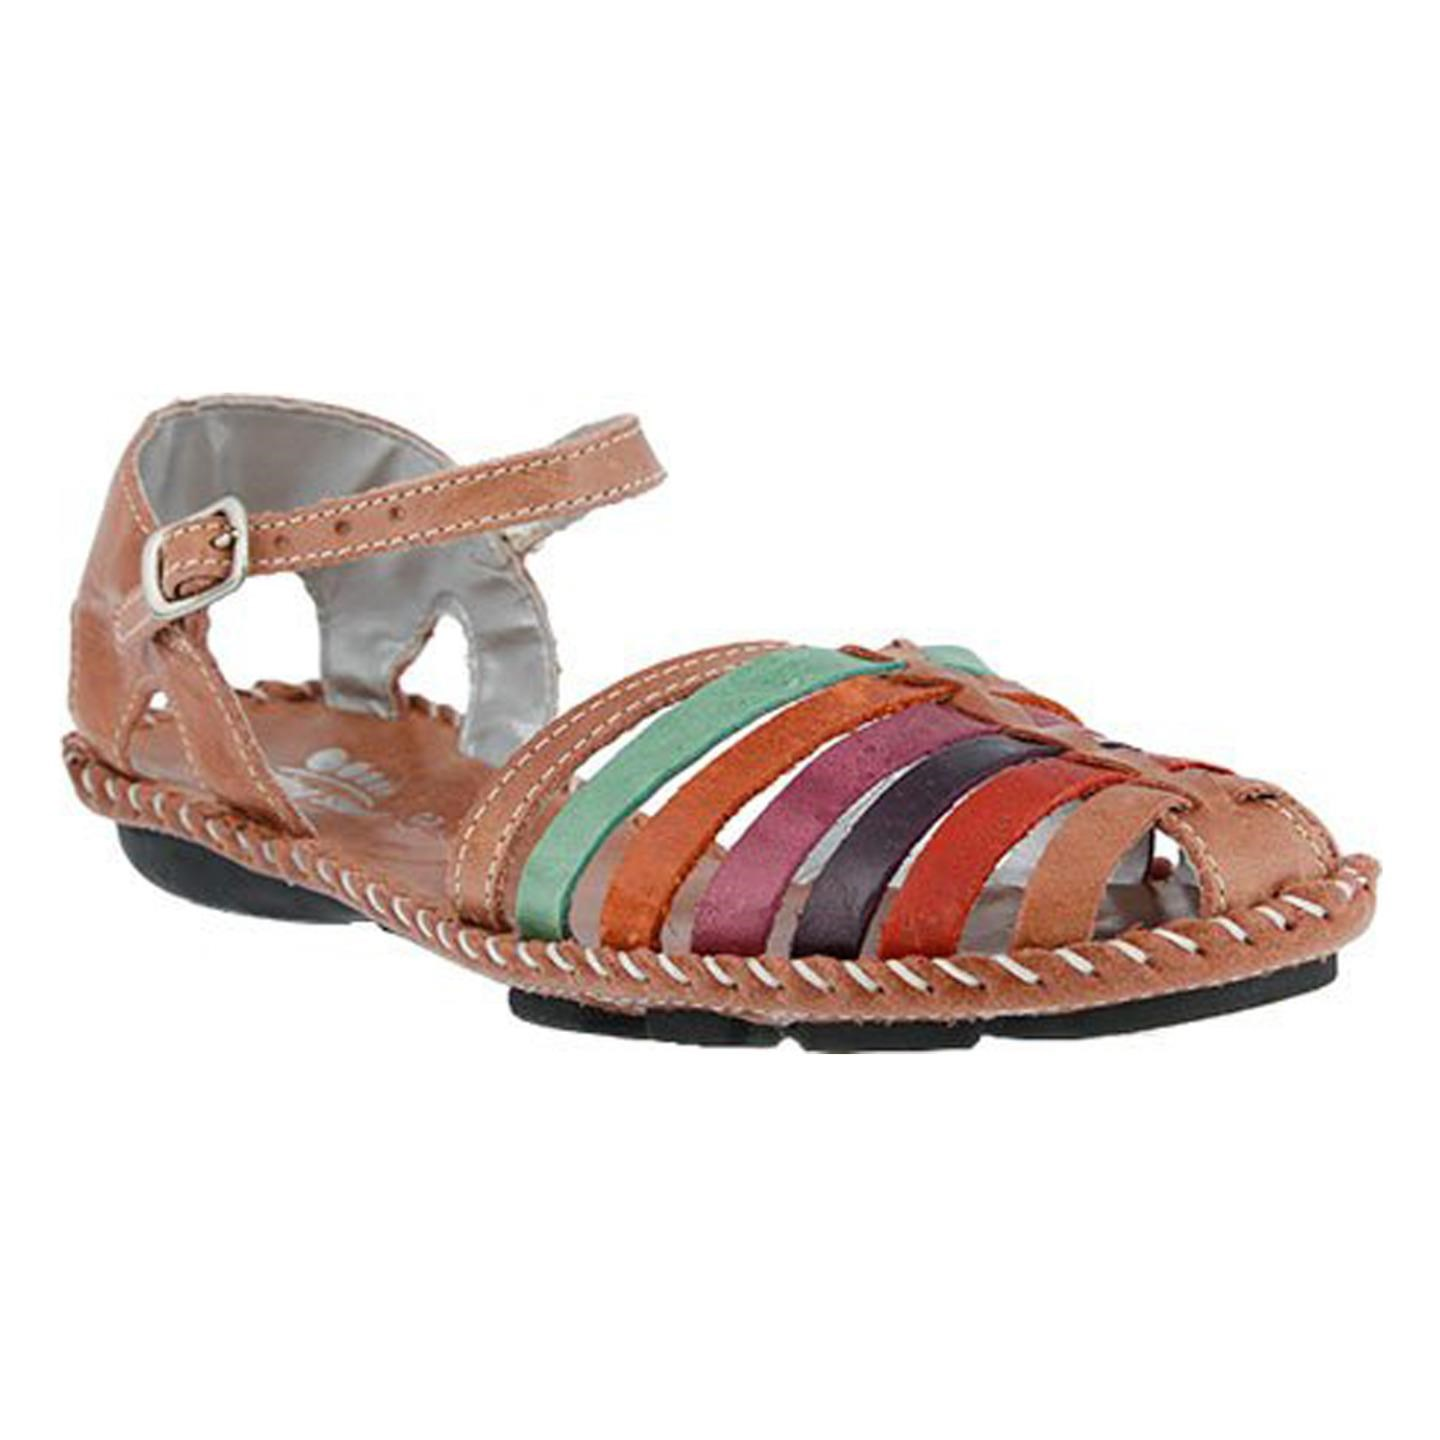 Chilton By Spring Step Rose Womens Leather Sandal 40 EU / 9 US Women